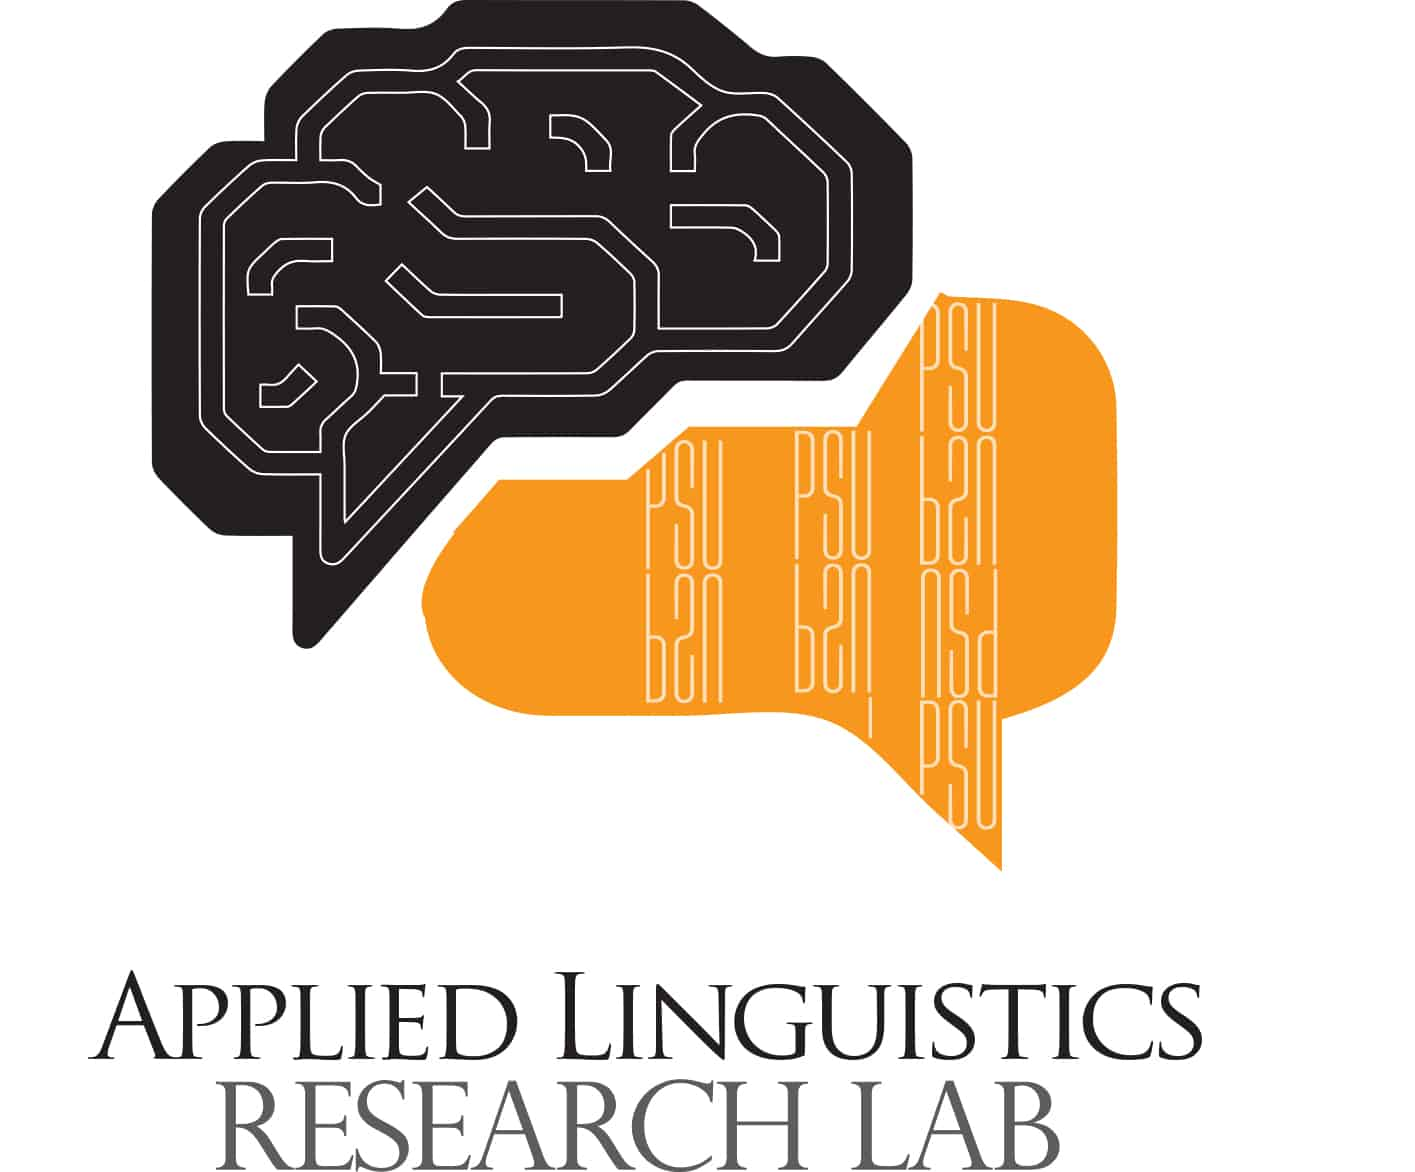 The Applied Linguistics Research Lab (ALLAB) at King Saud University and AlFaisal University